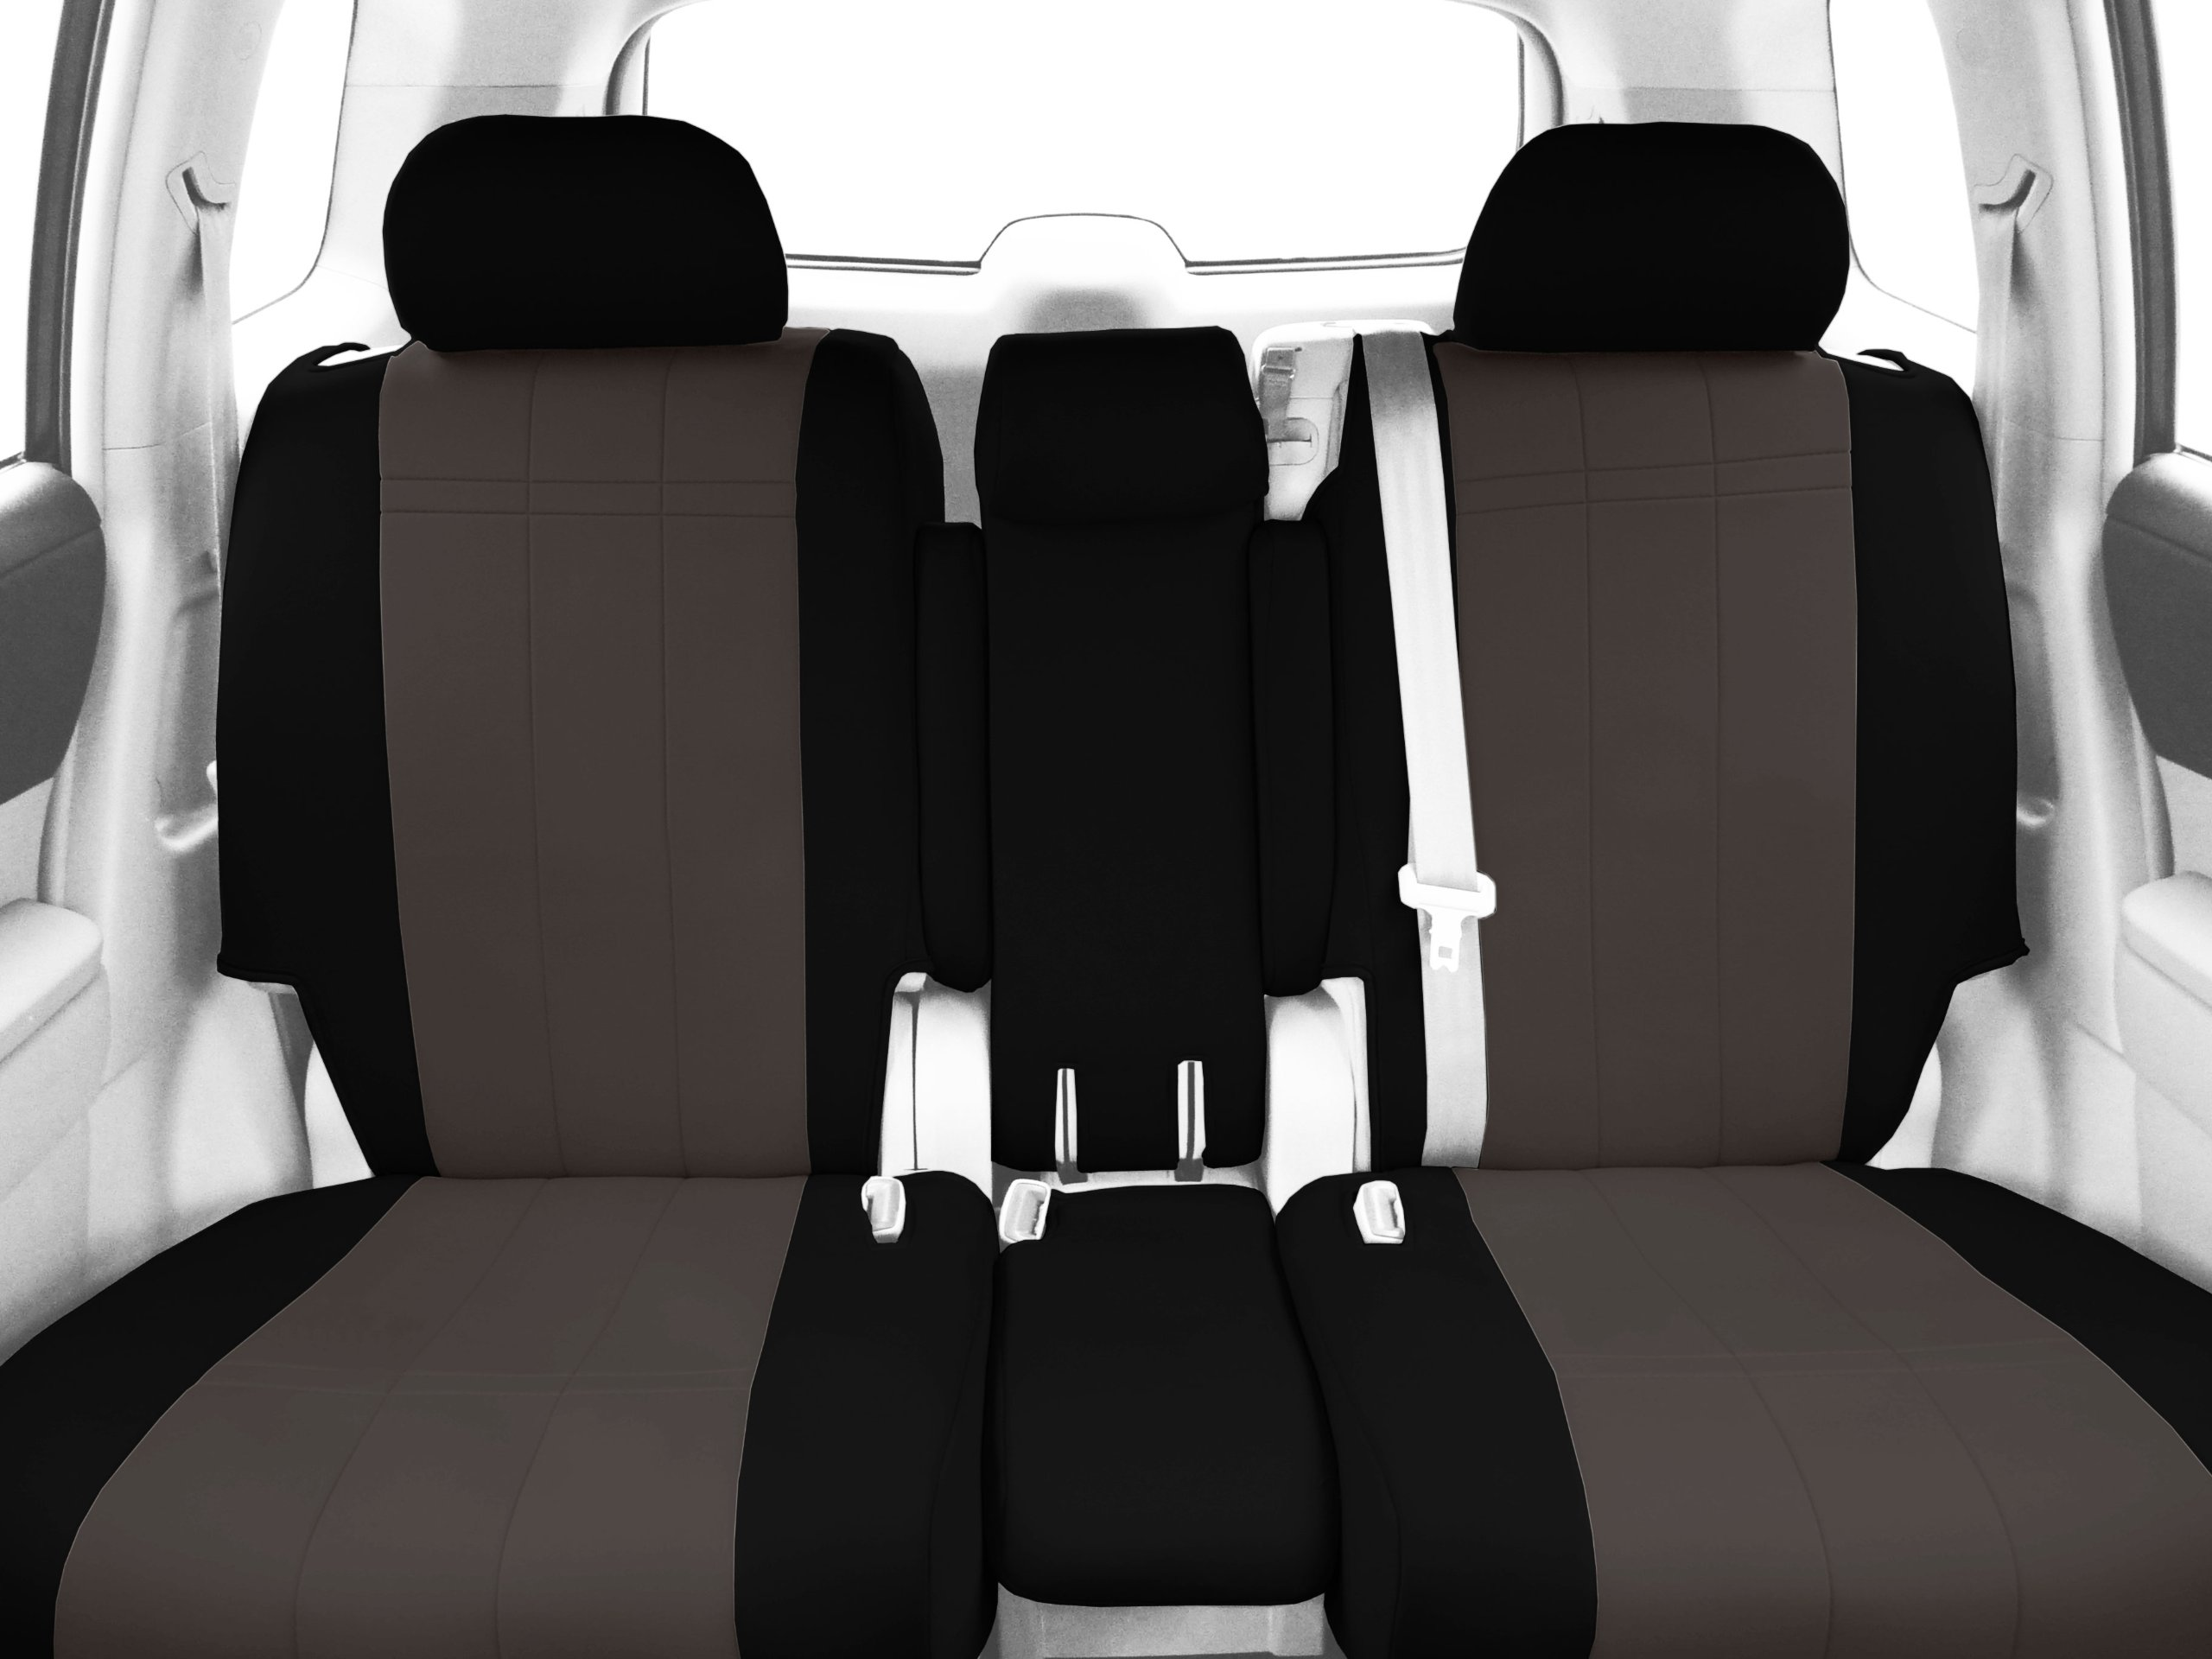 CalTrend Front Row 40/20/40 Split Bench Custom Fit Seat Cover for Select Ford F-150 Models - Neoprene (Charcoal Insert with Black Trim) by CalTrend